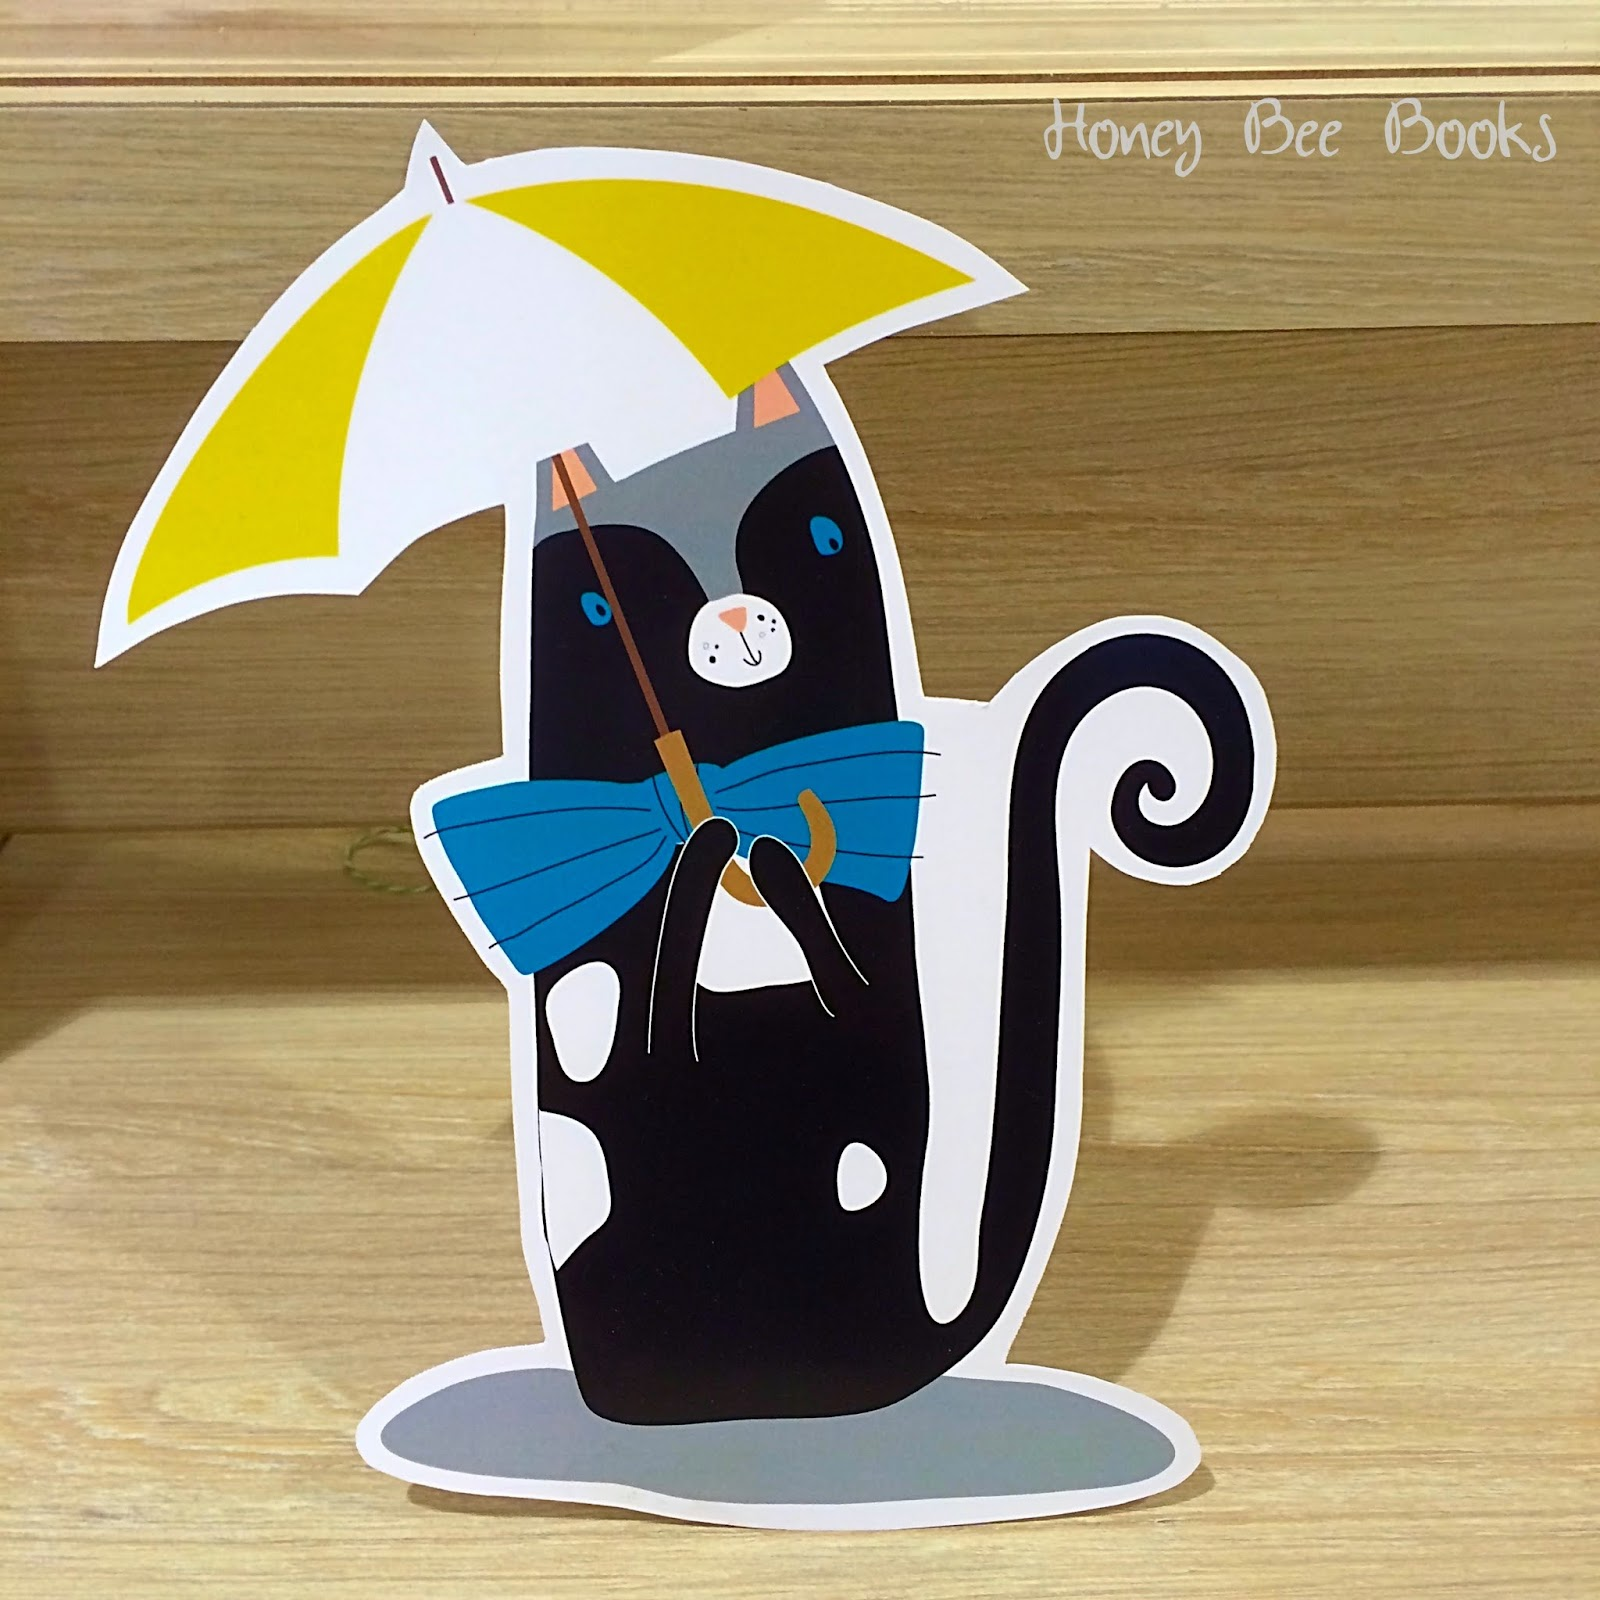 Little black cat from Tottie and Dot by Tania McCartney and Tina Snerling